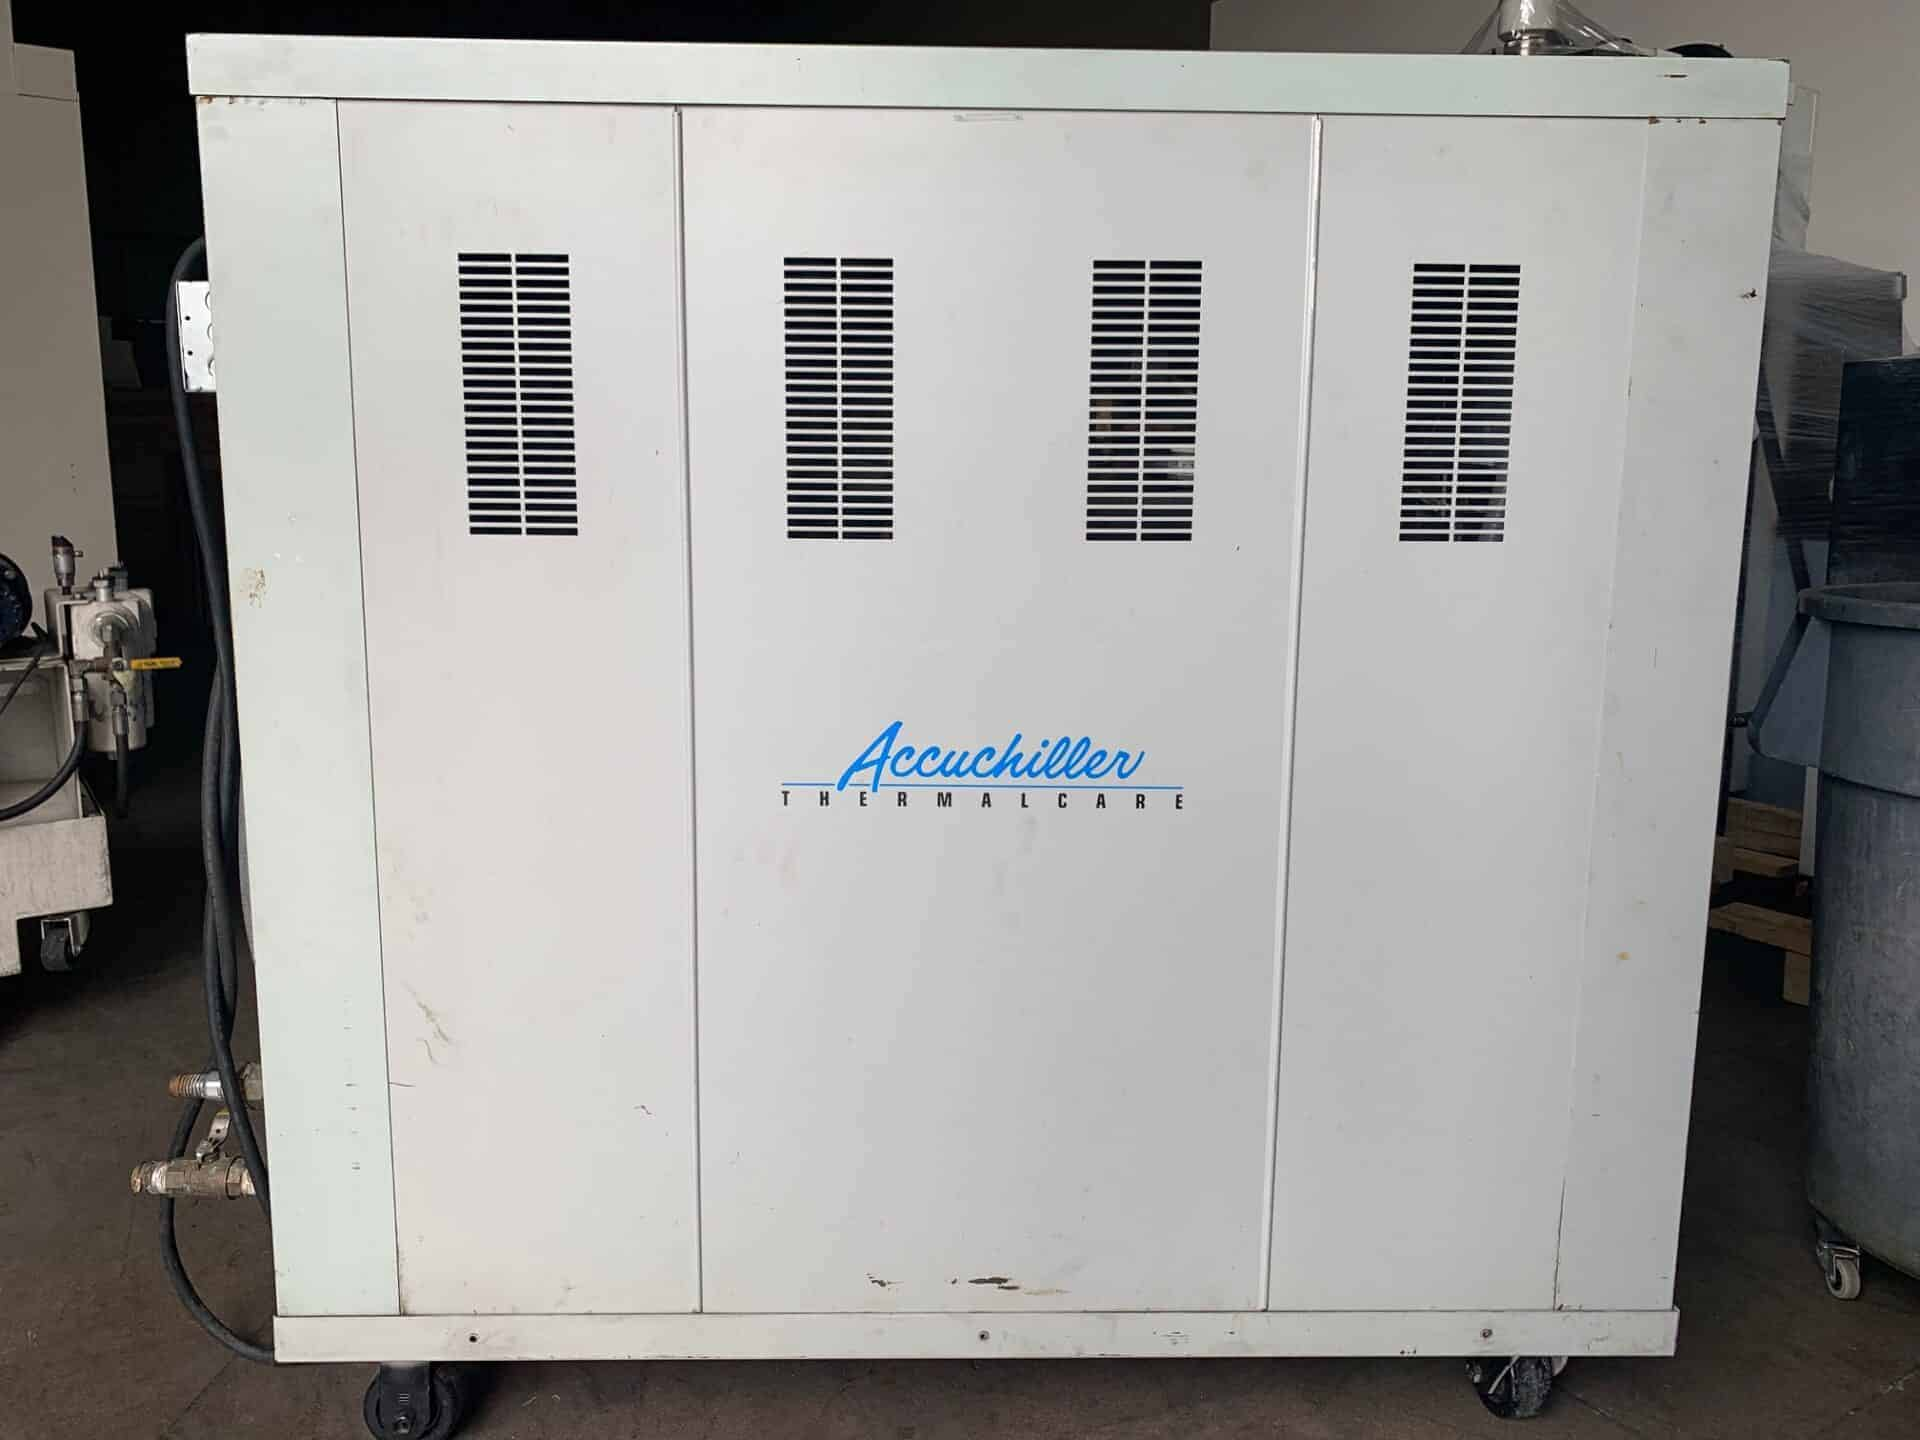 2009 Thermalcare Accuchiller